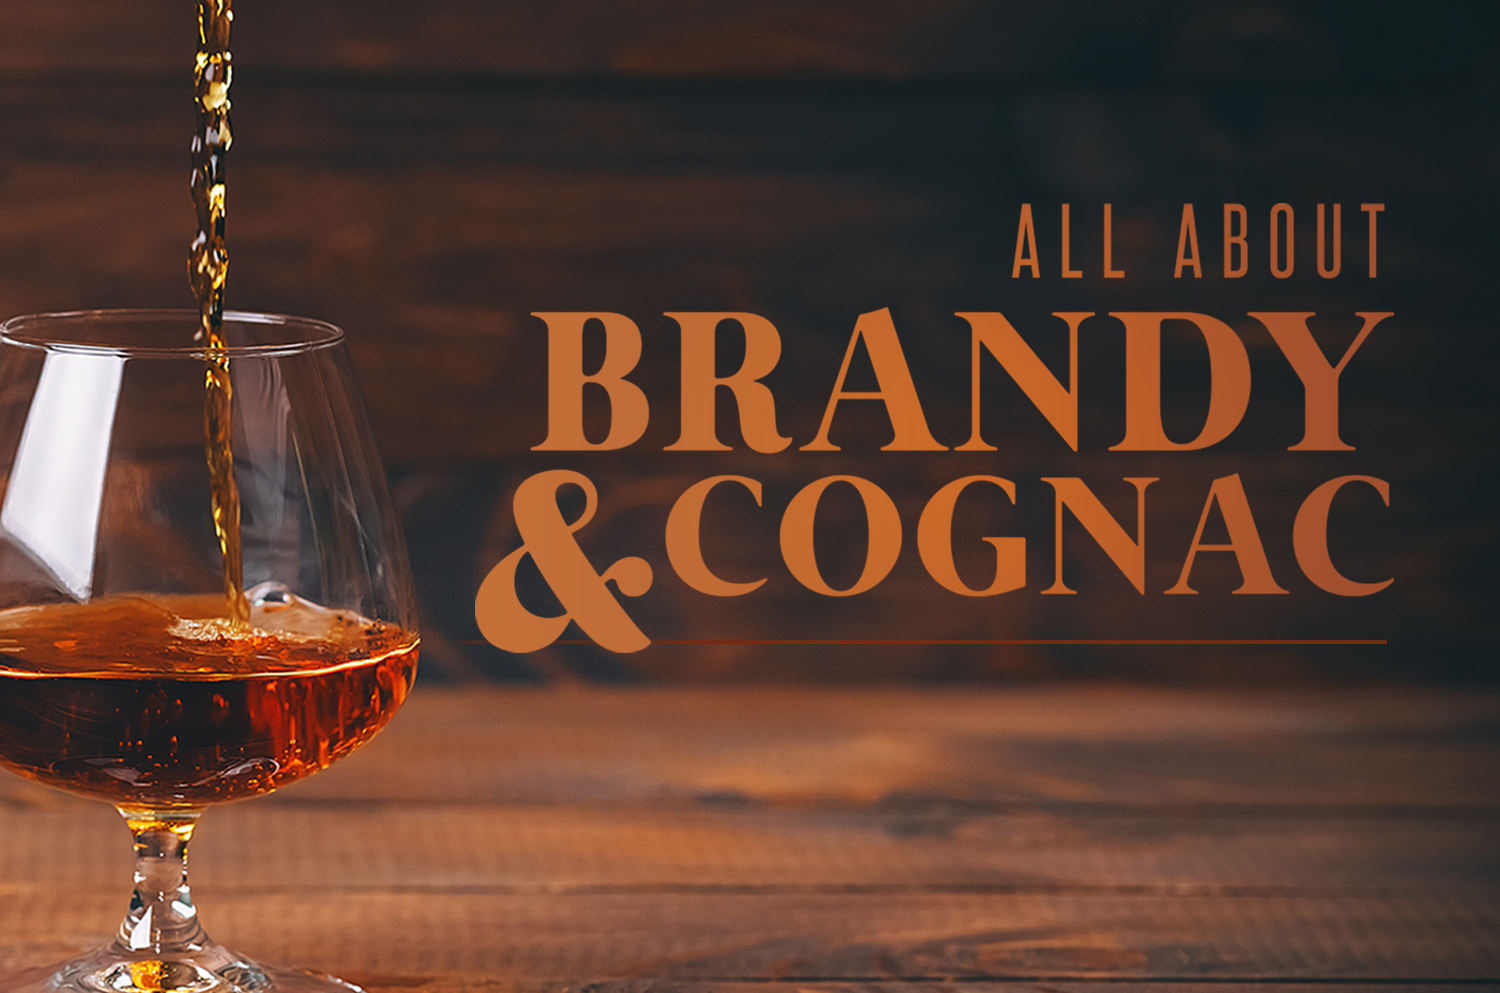 All About Brandy and Cognac thumb